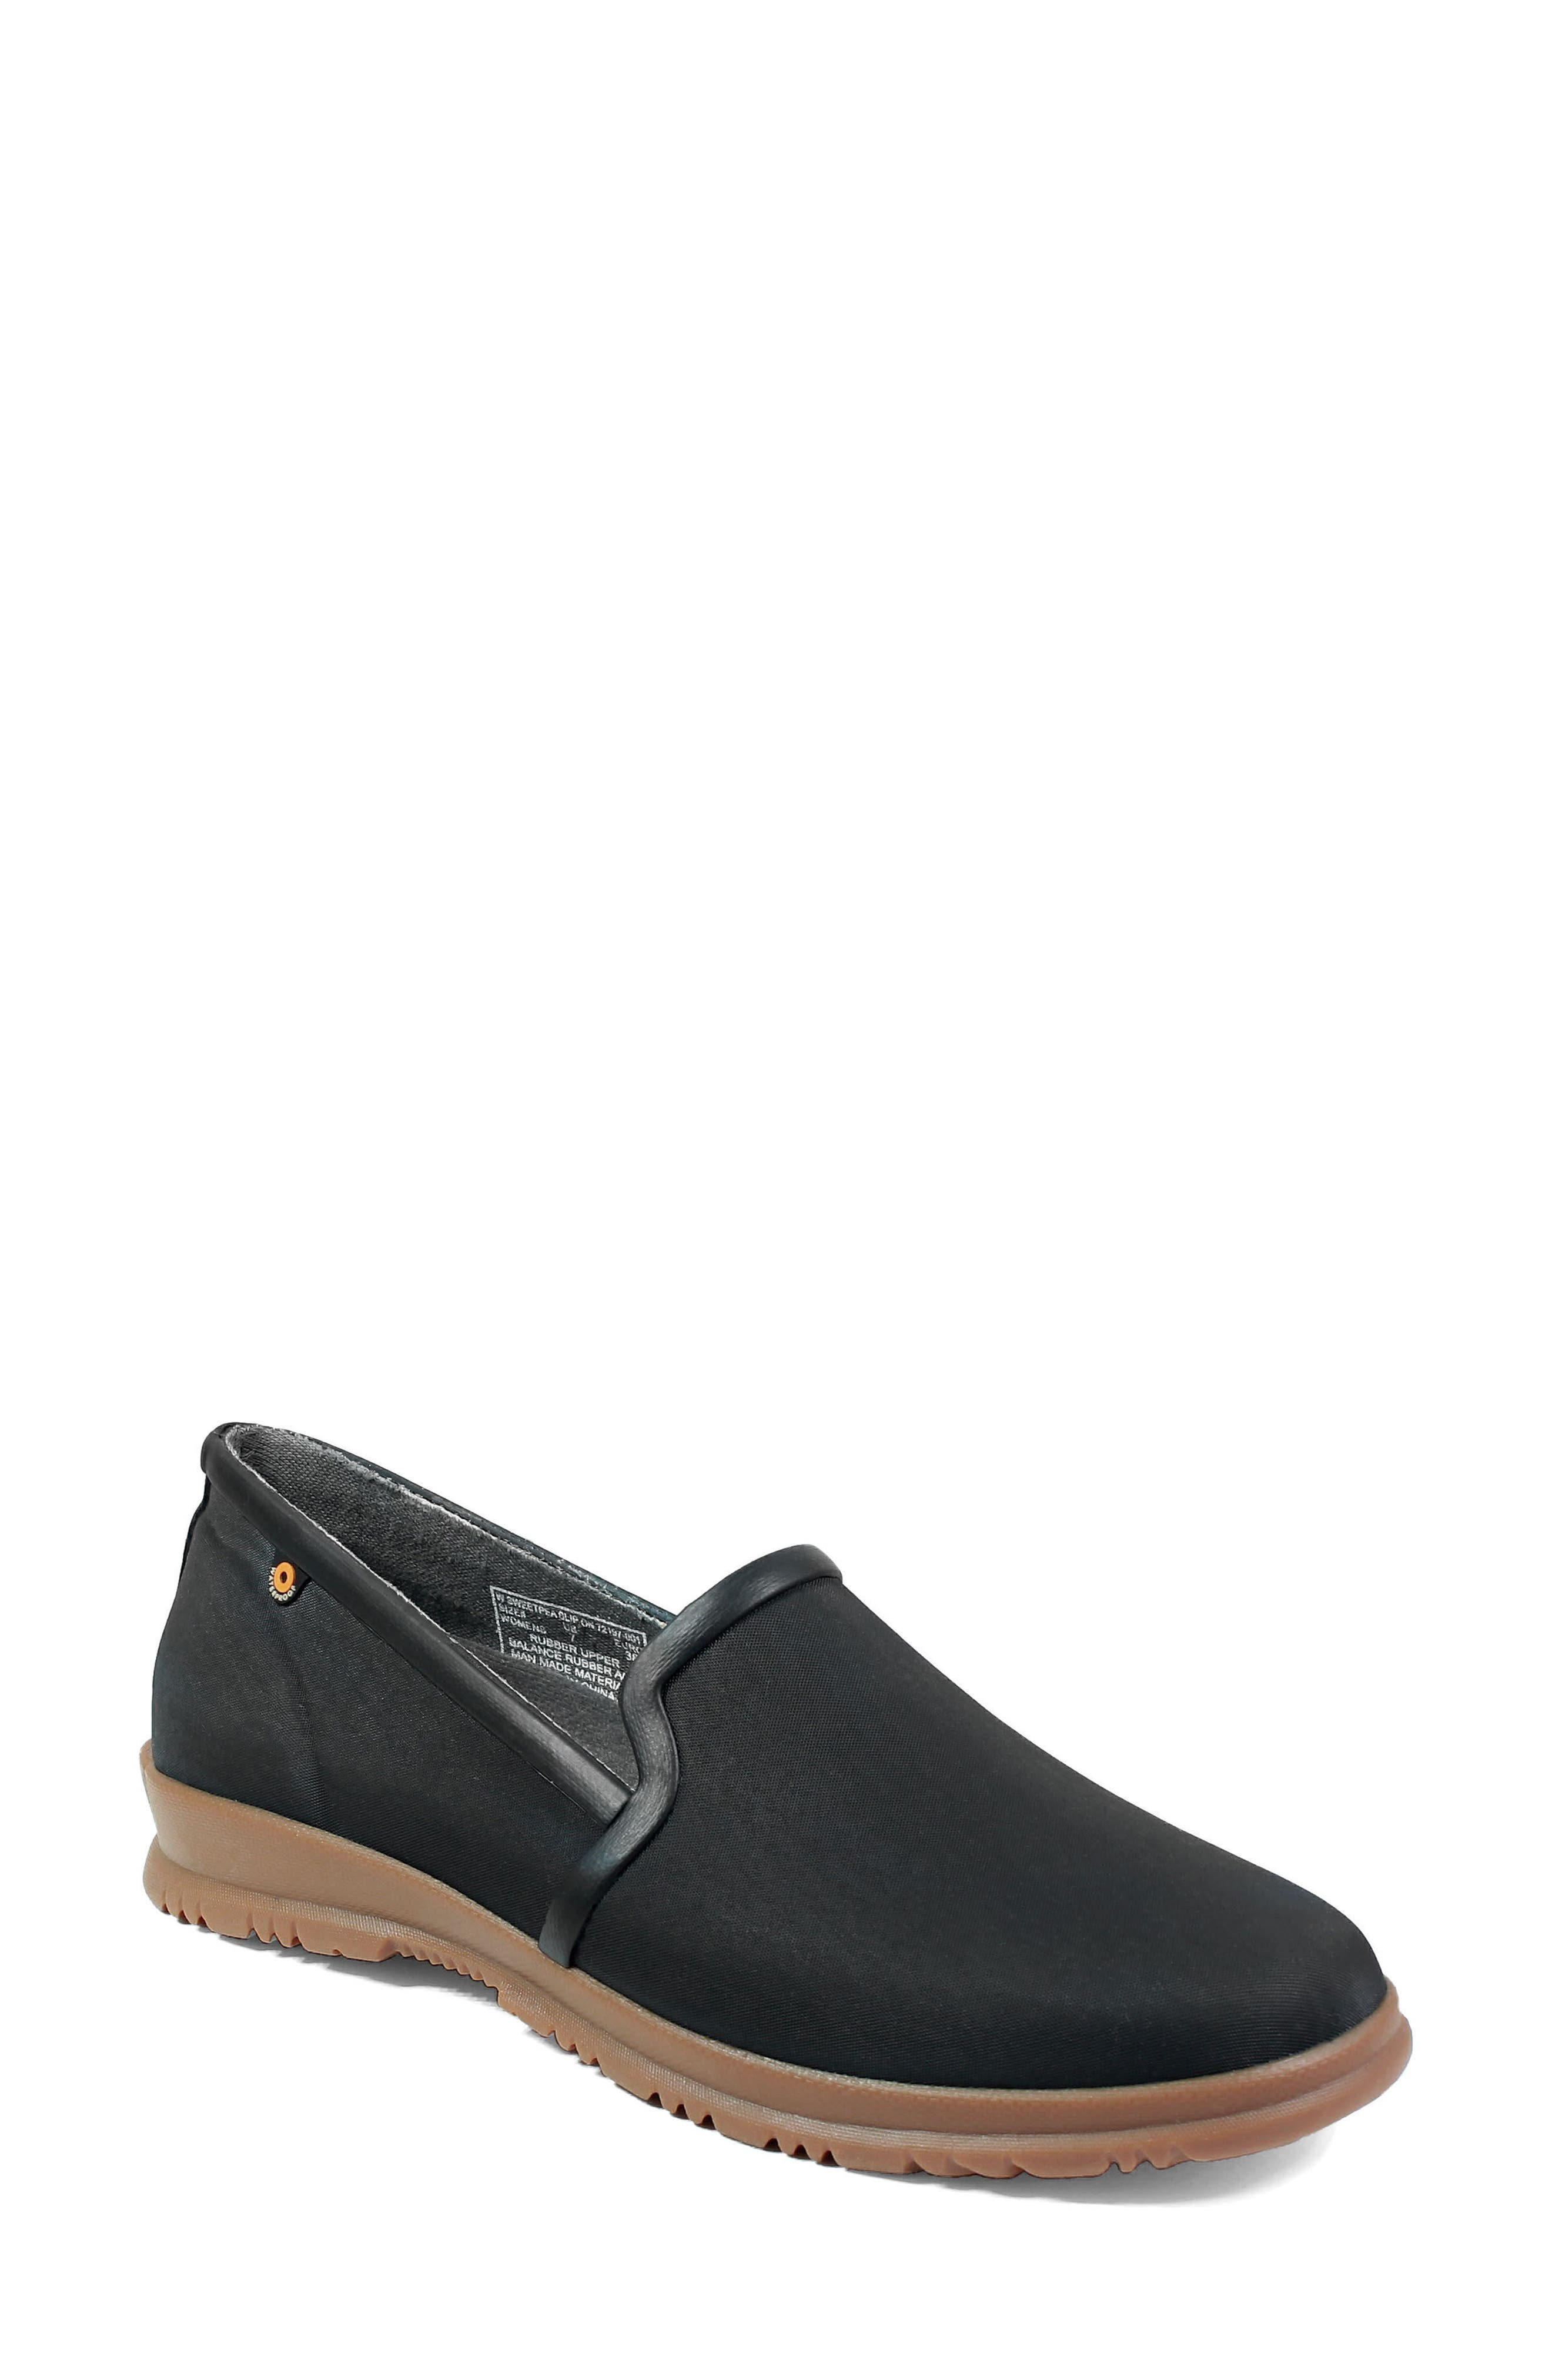 Sweetpea Waterproof Slip-On Sneaker,                         Main,                         color, Black Fabric